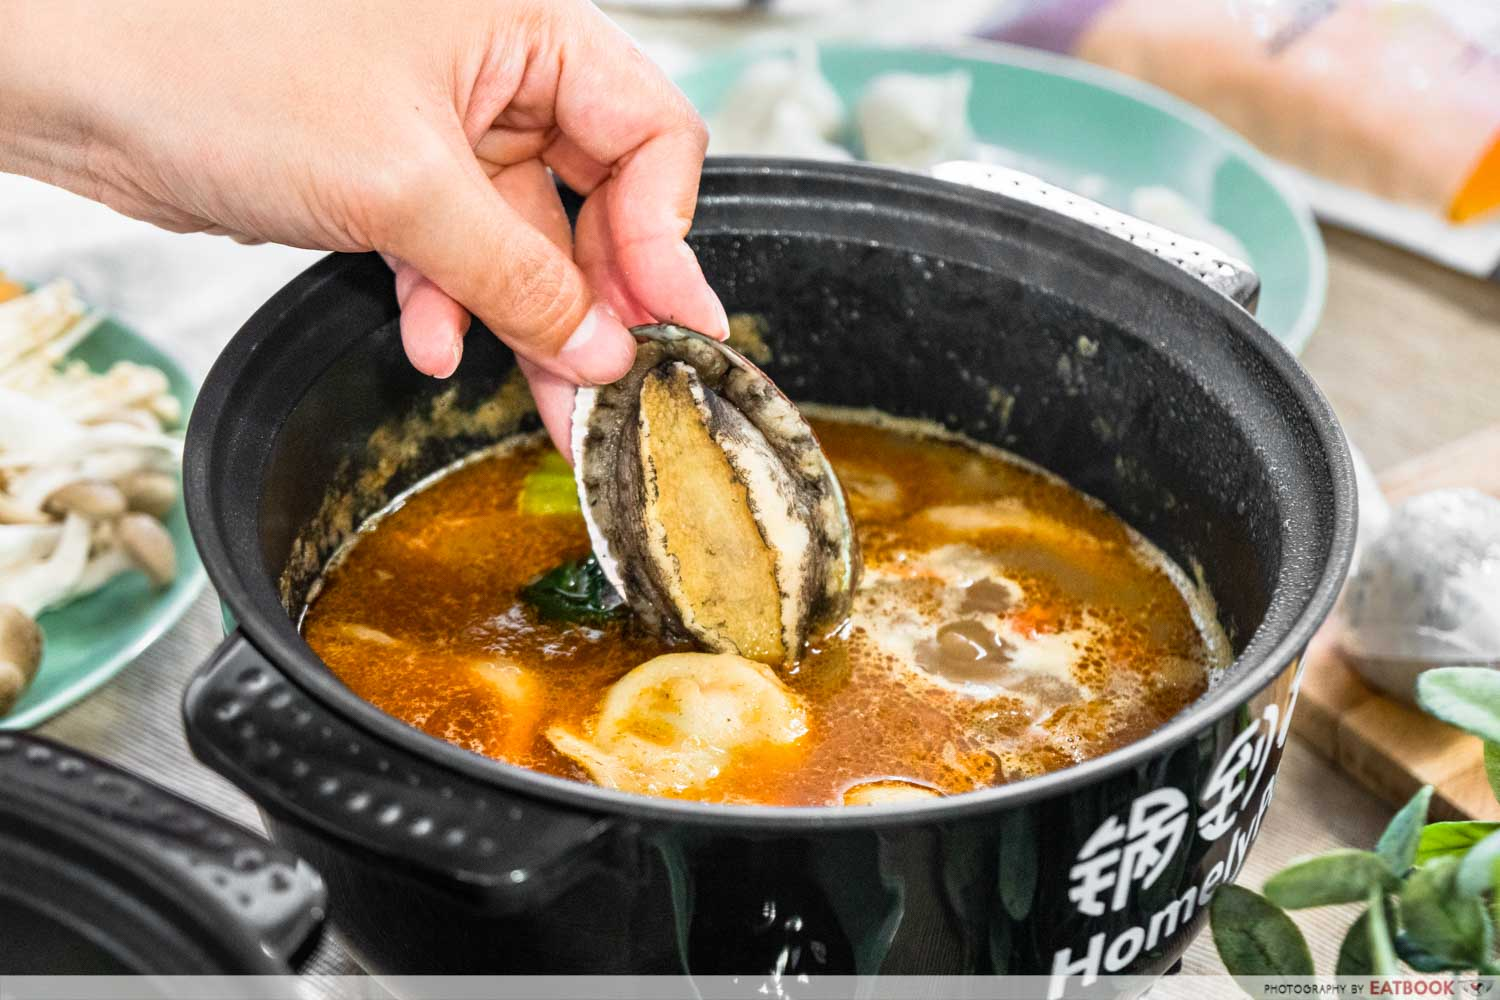 homelypot - fresh abalone